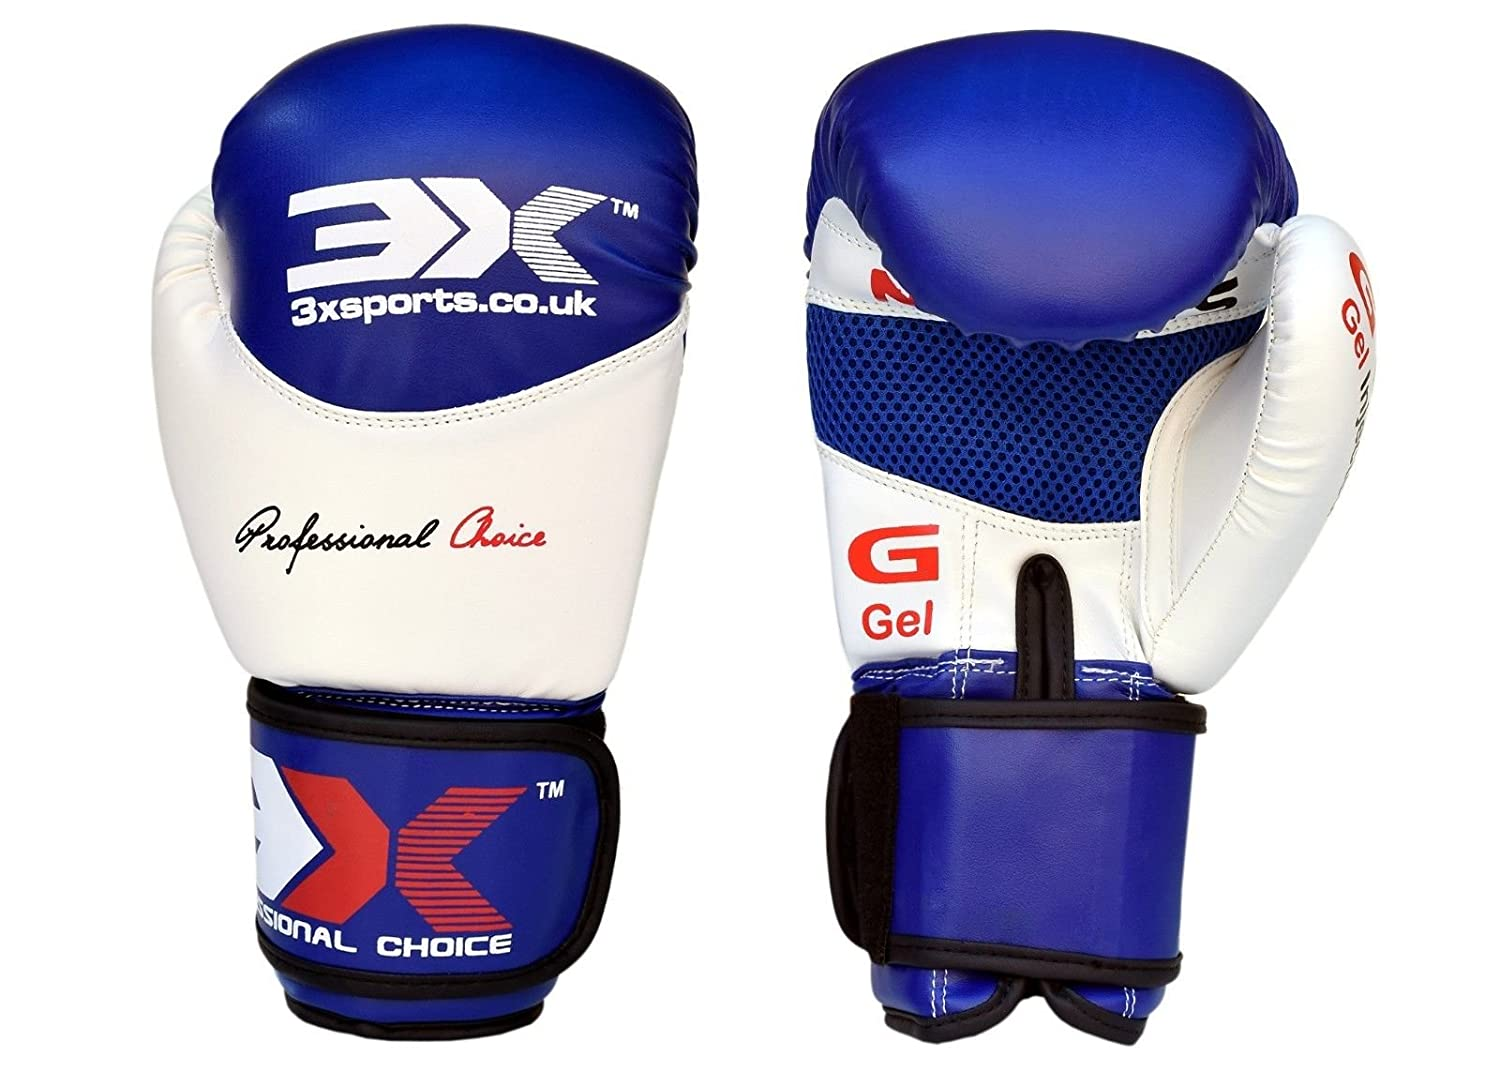 3 x Sports Leder Boxhandschuhe Muay Thai Sparring Training Handschuh Stanz Bag Mitts, 10oz, 12oz, 14oz, 16oz 3X Sports